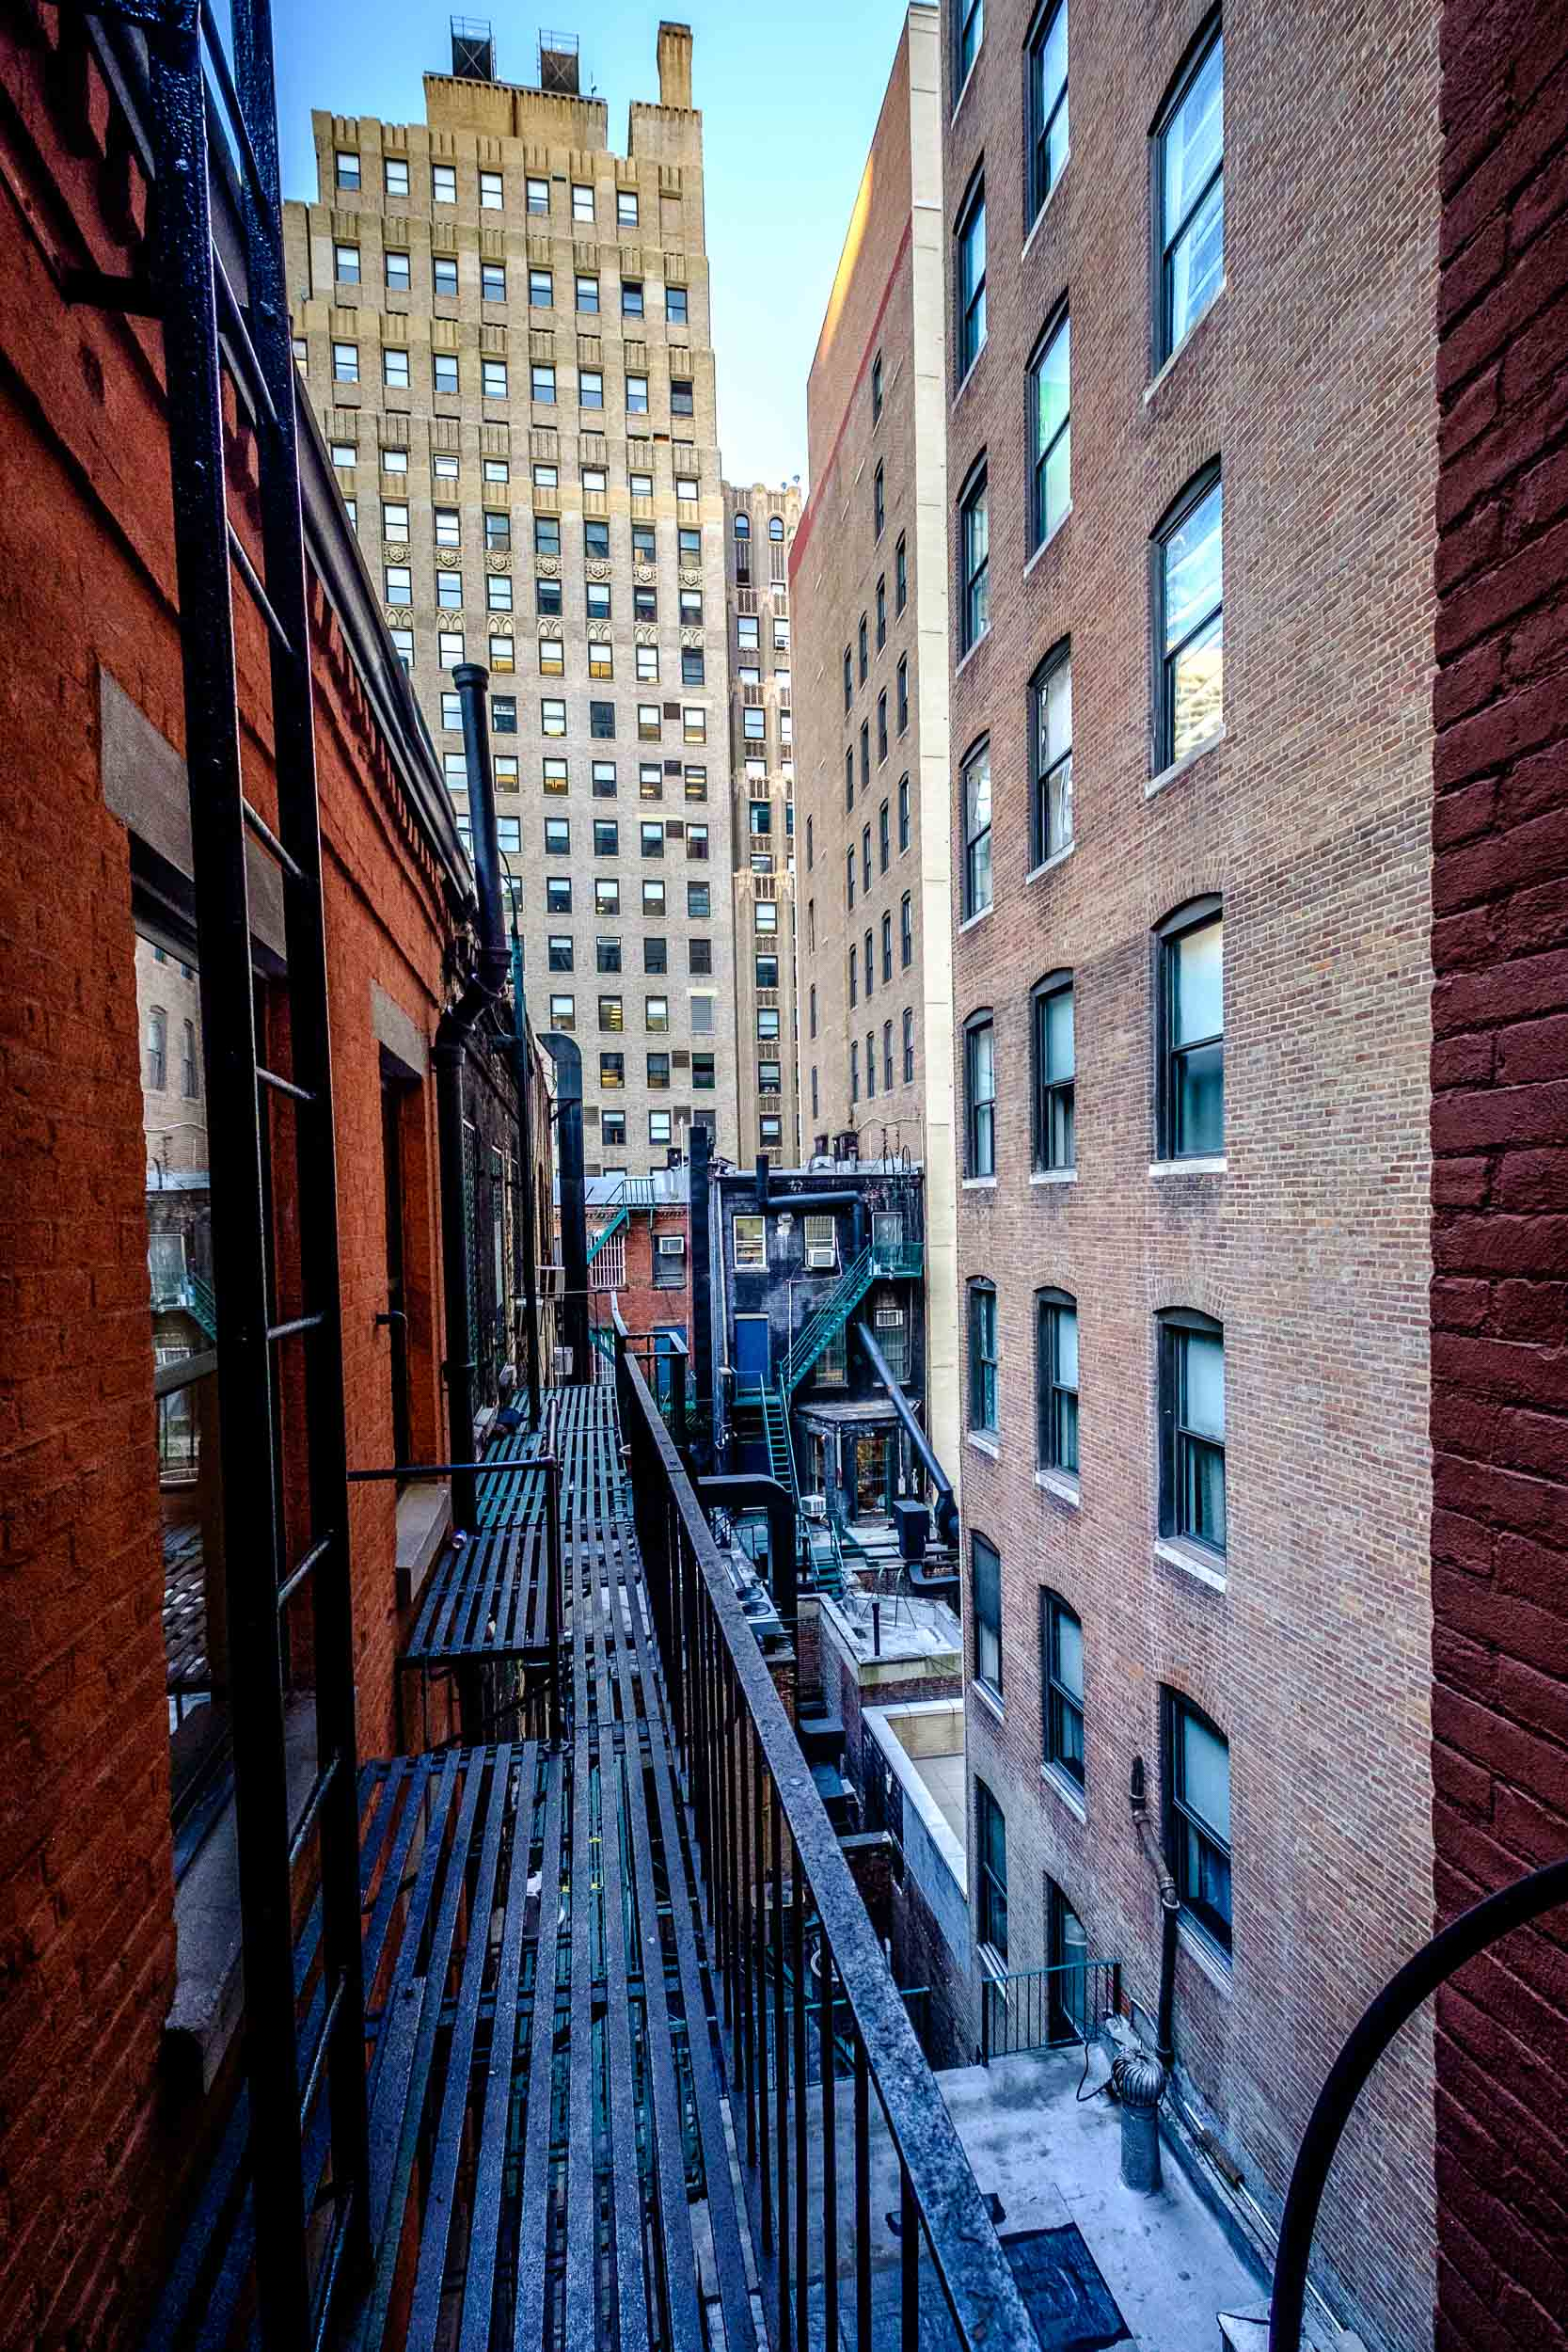 The fire escape outside my hotel room window.